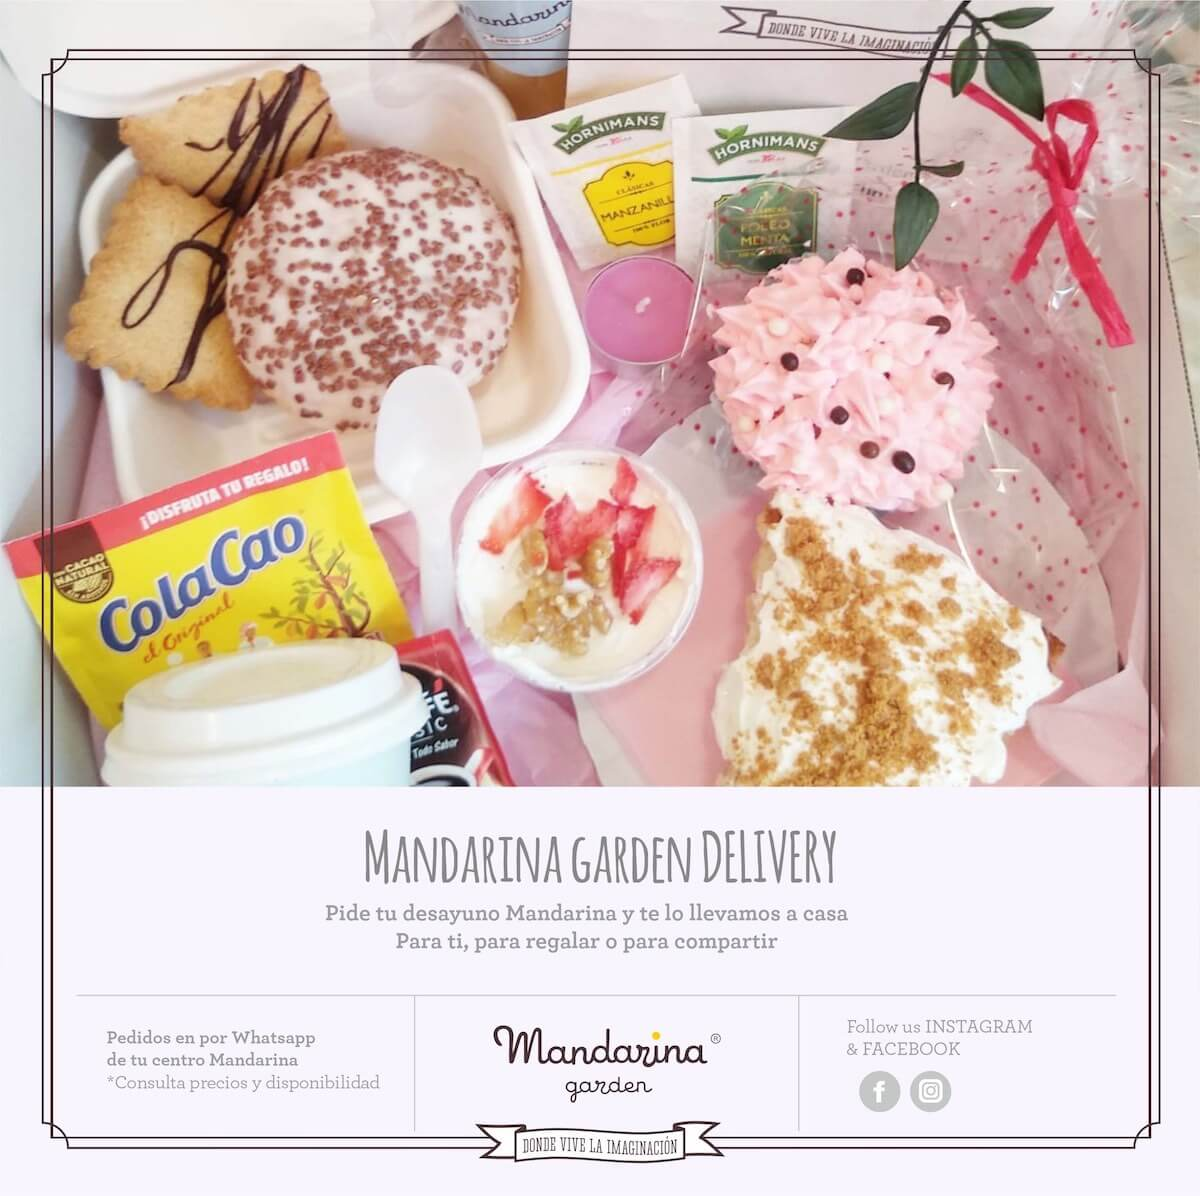 New breakfasts at Mandarina garden